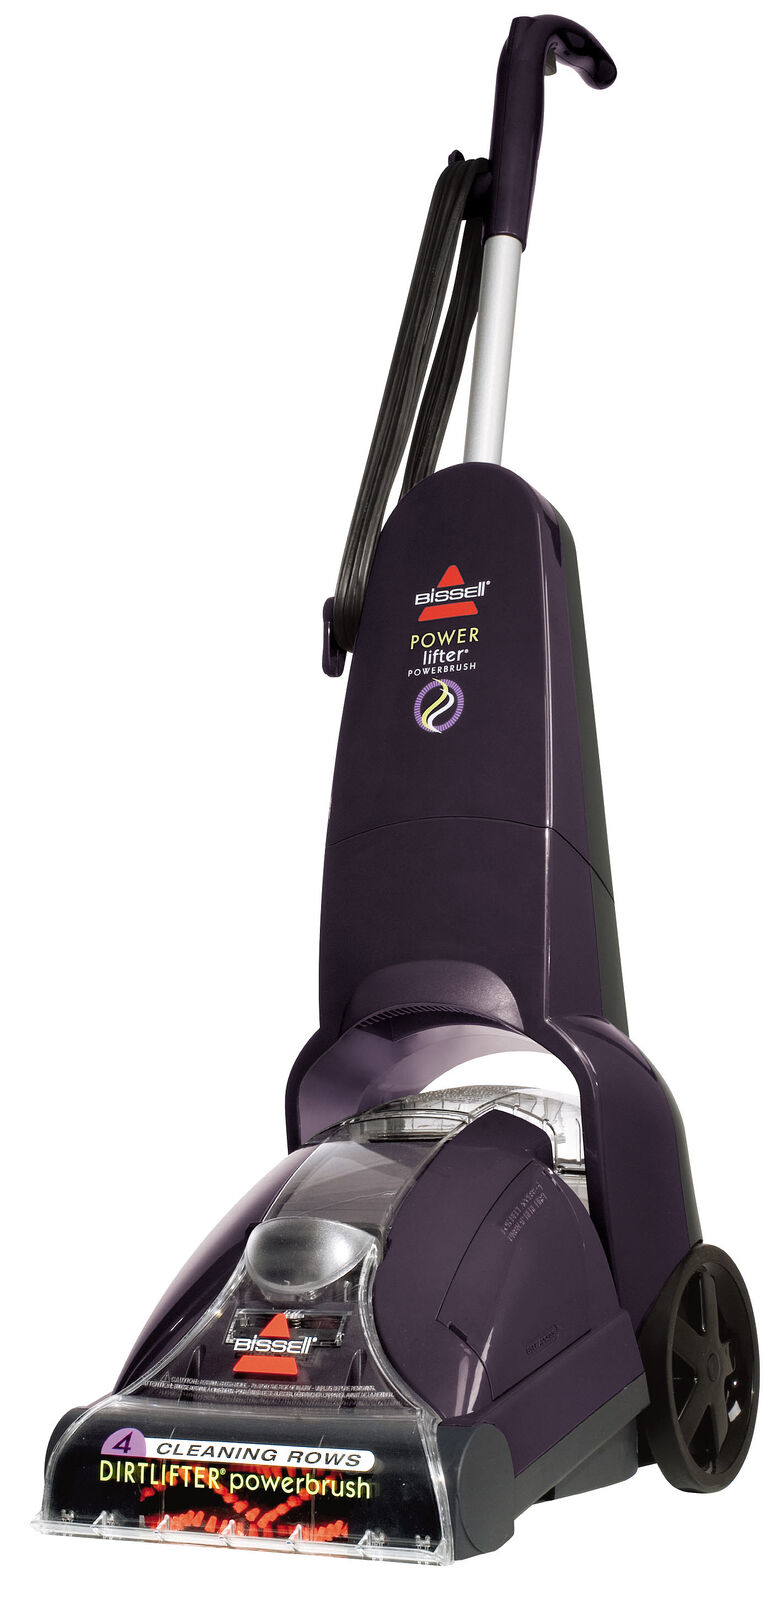 Bissell Powerlifter Powerbrush Upright Lightweight Carpet